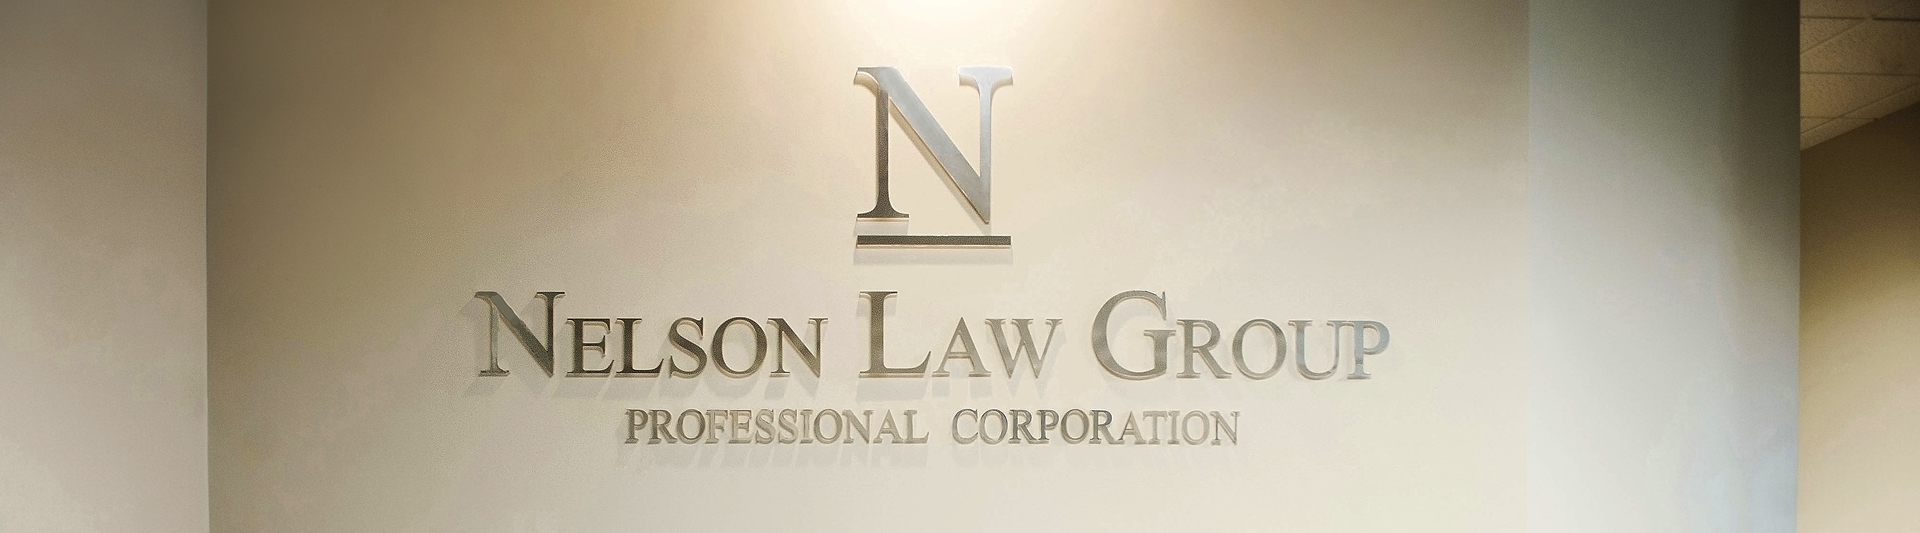 nelson-law-group-pc-divorce-attorney-texas-sign